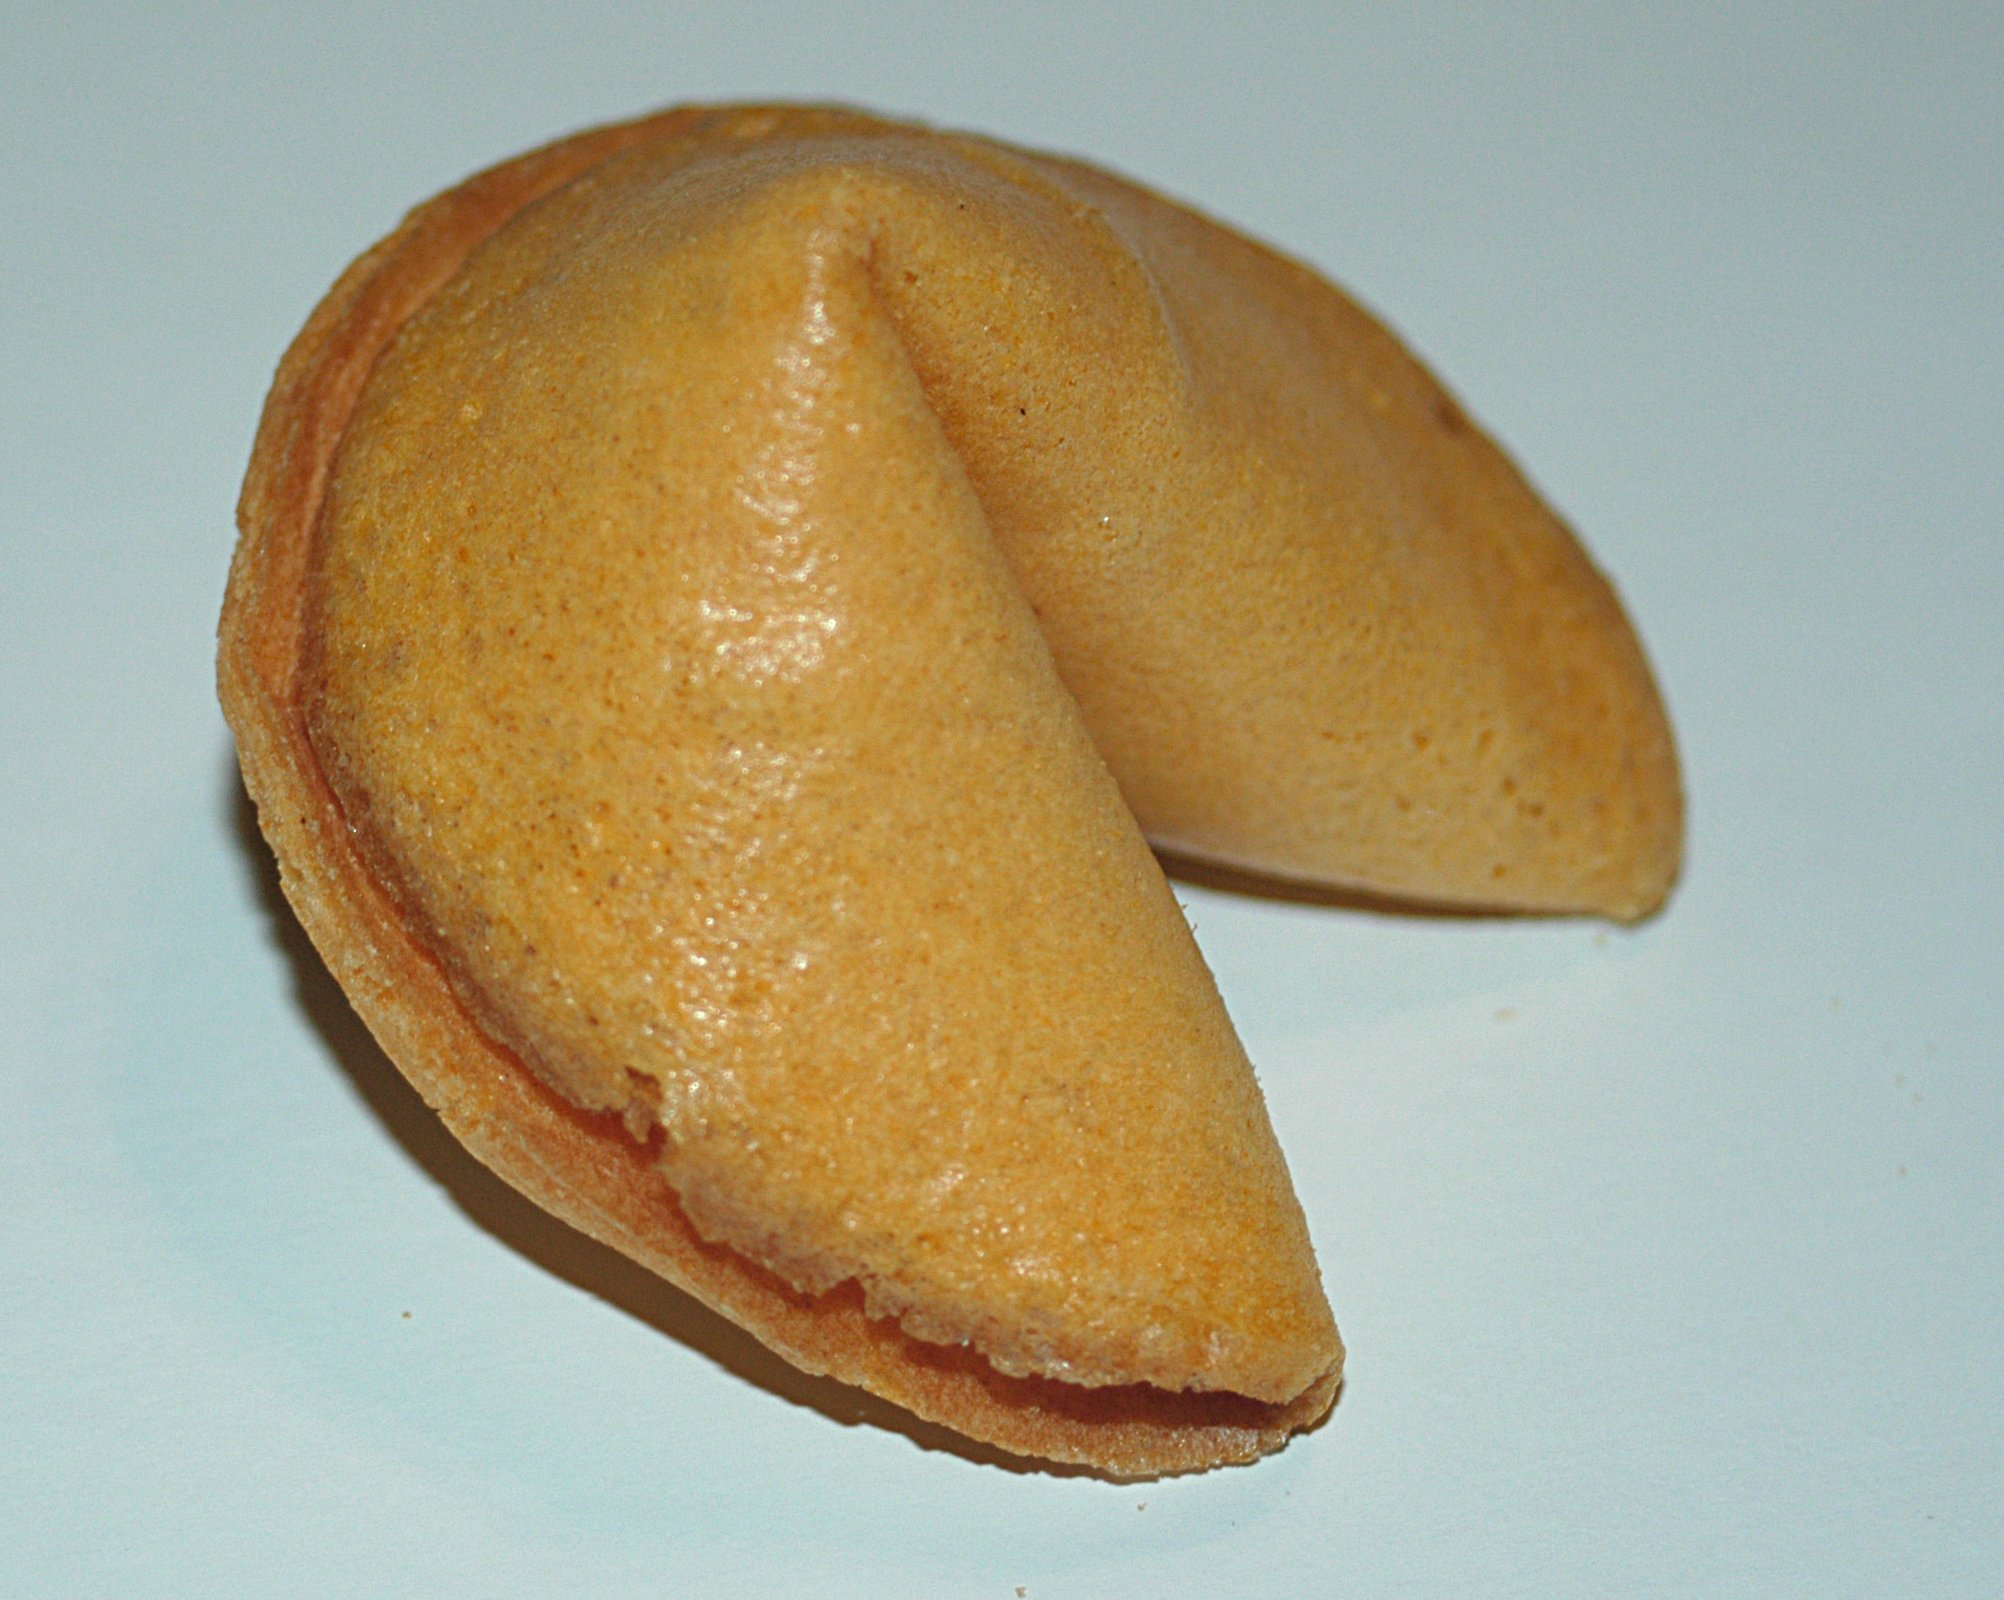 Depiction of Galleta de la suerte